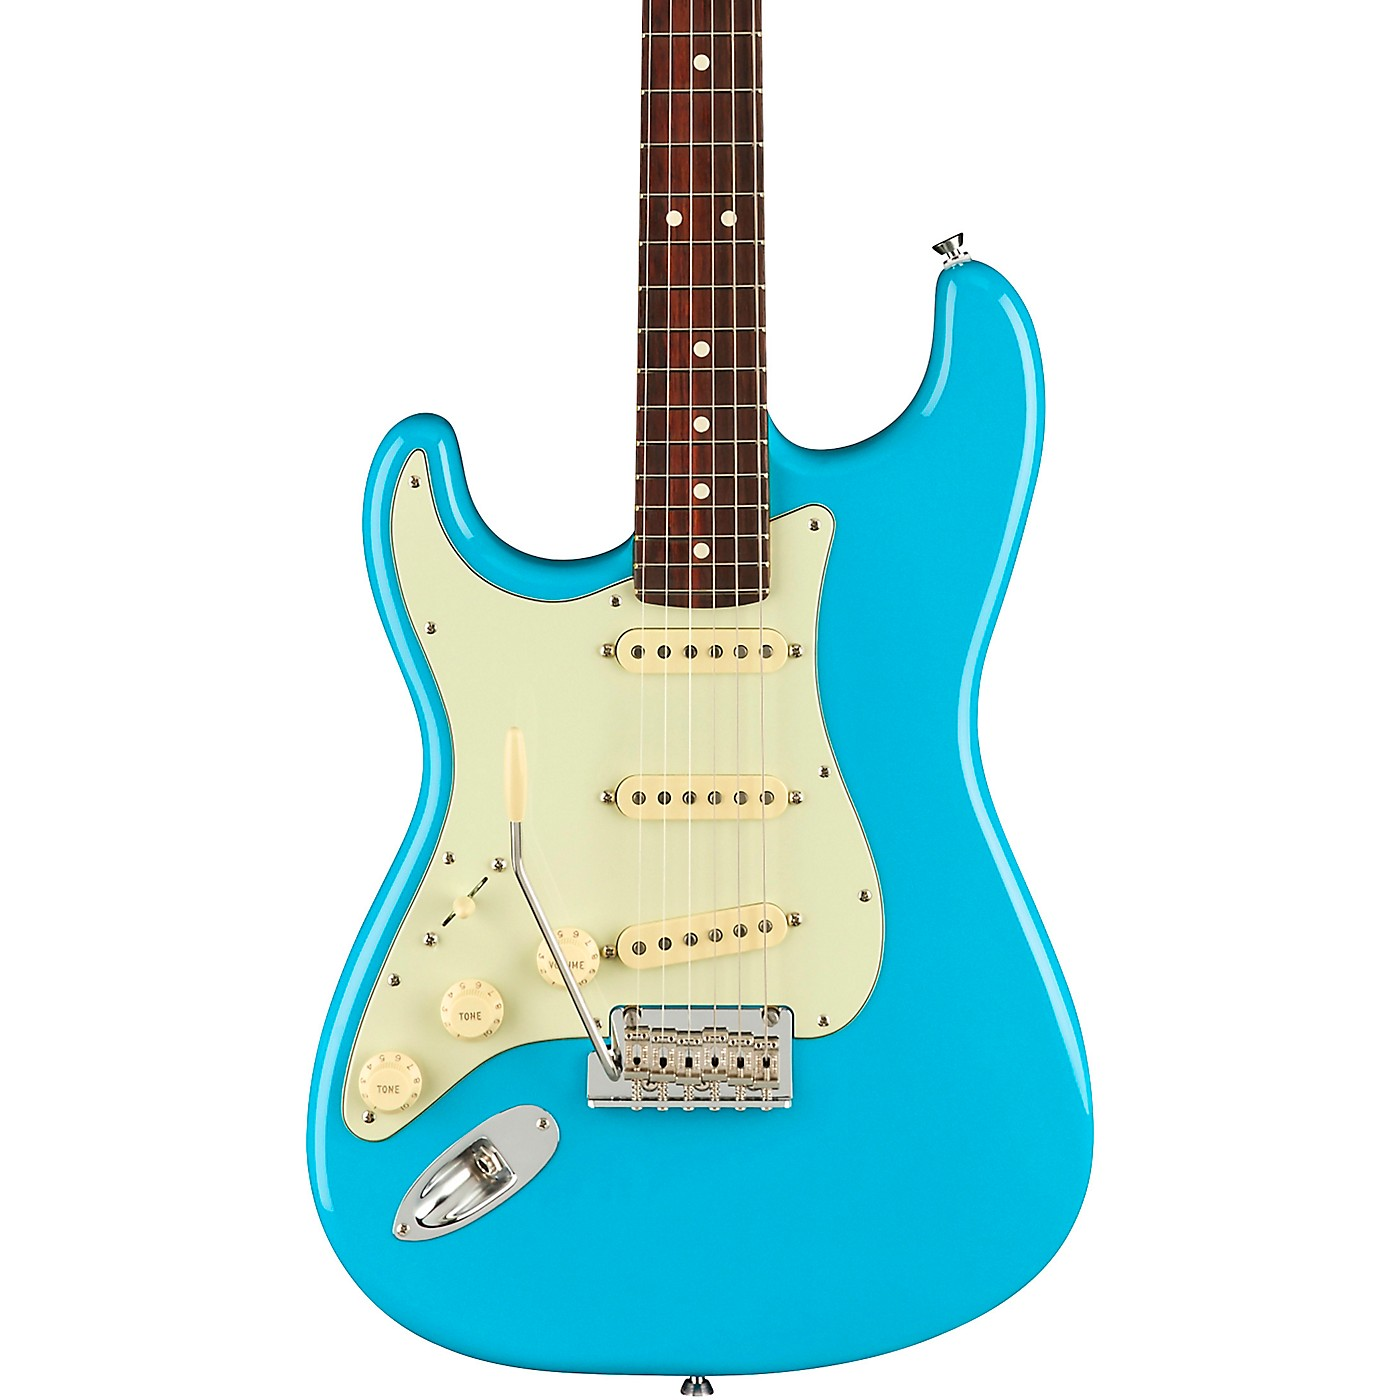 Fender American Professional II Stratocaster Rosewood Fingerboard Left-Handed Electric Guitar thumbnail